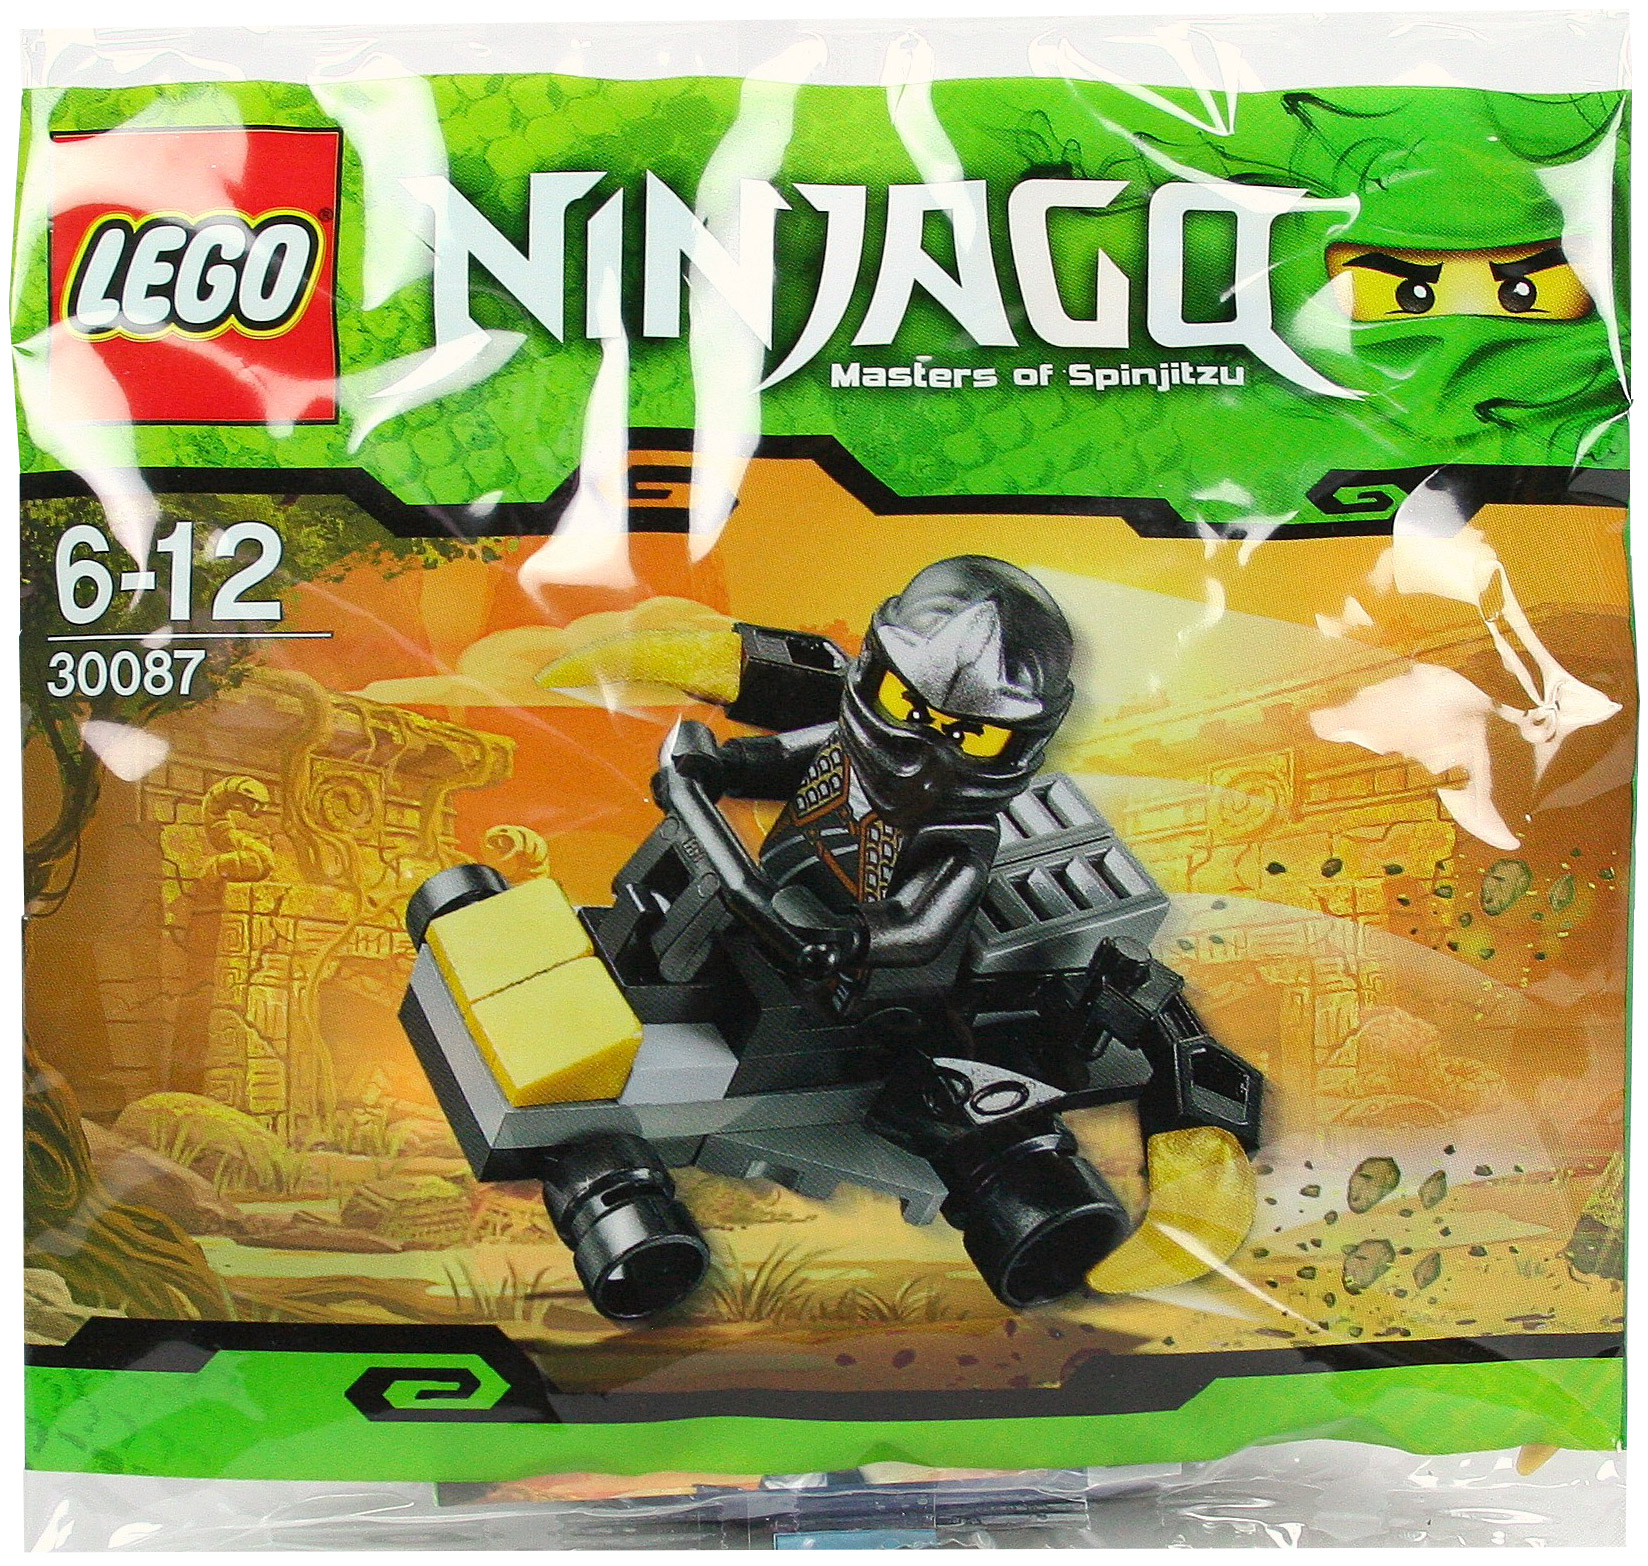 lego ninjago 30087 pas cher cole zx car polybag. Black Bedroom Furniture Sets. Home Design Ideas